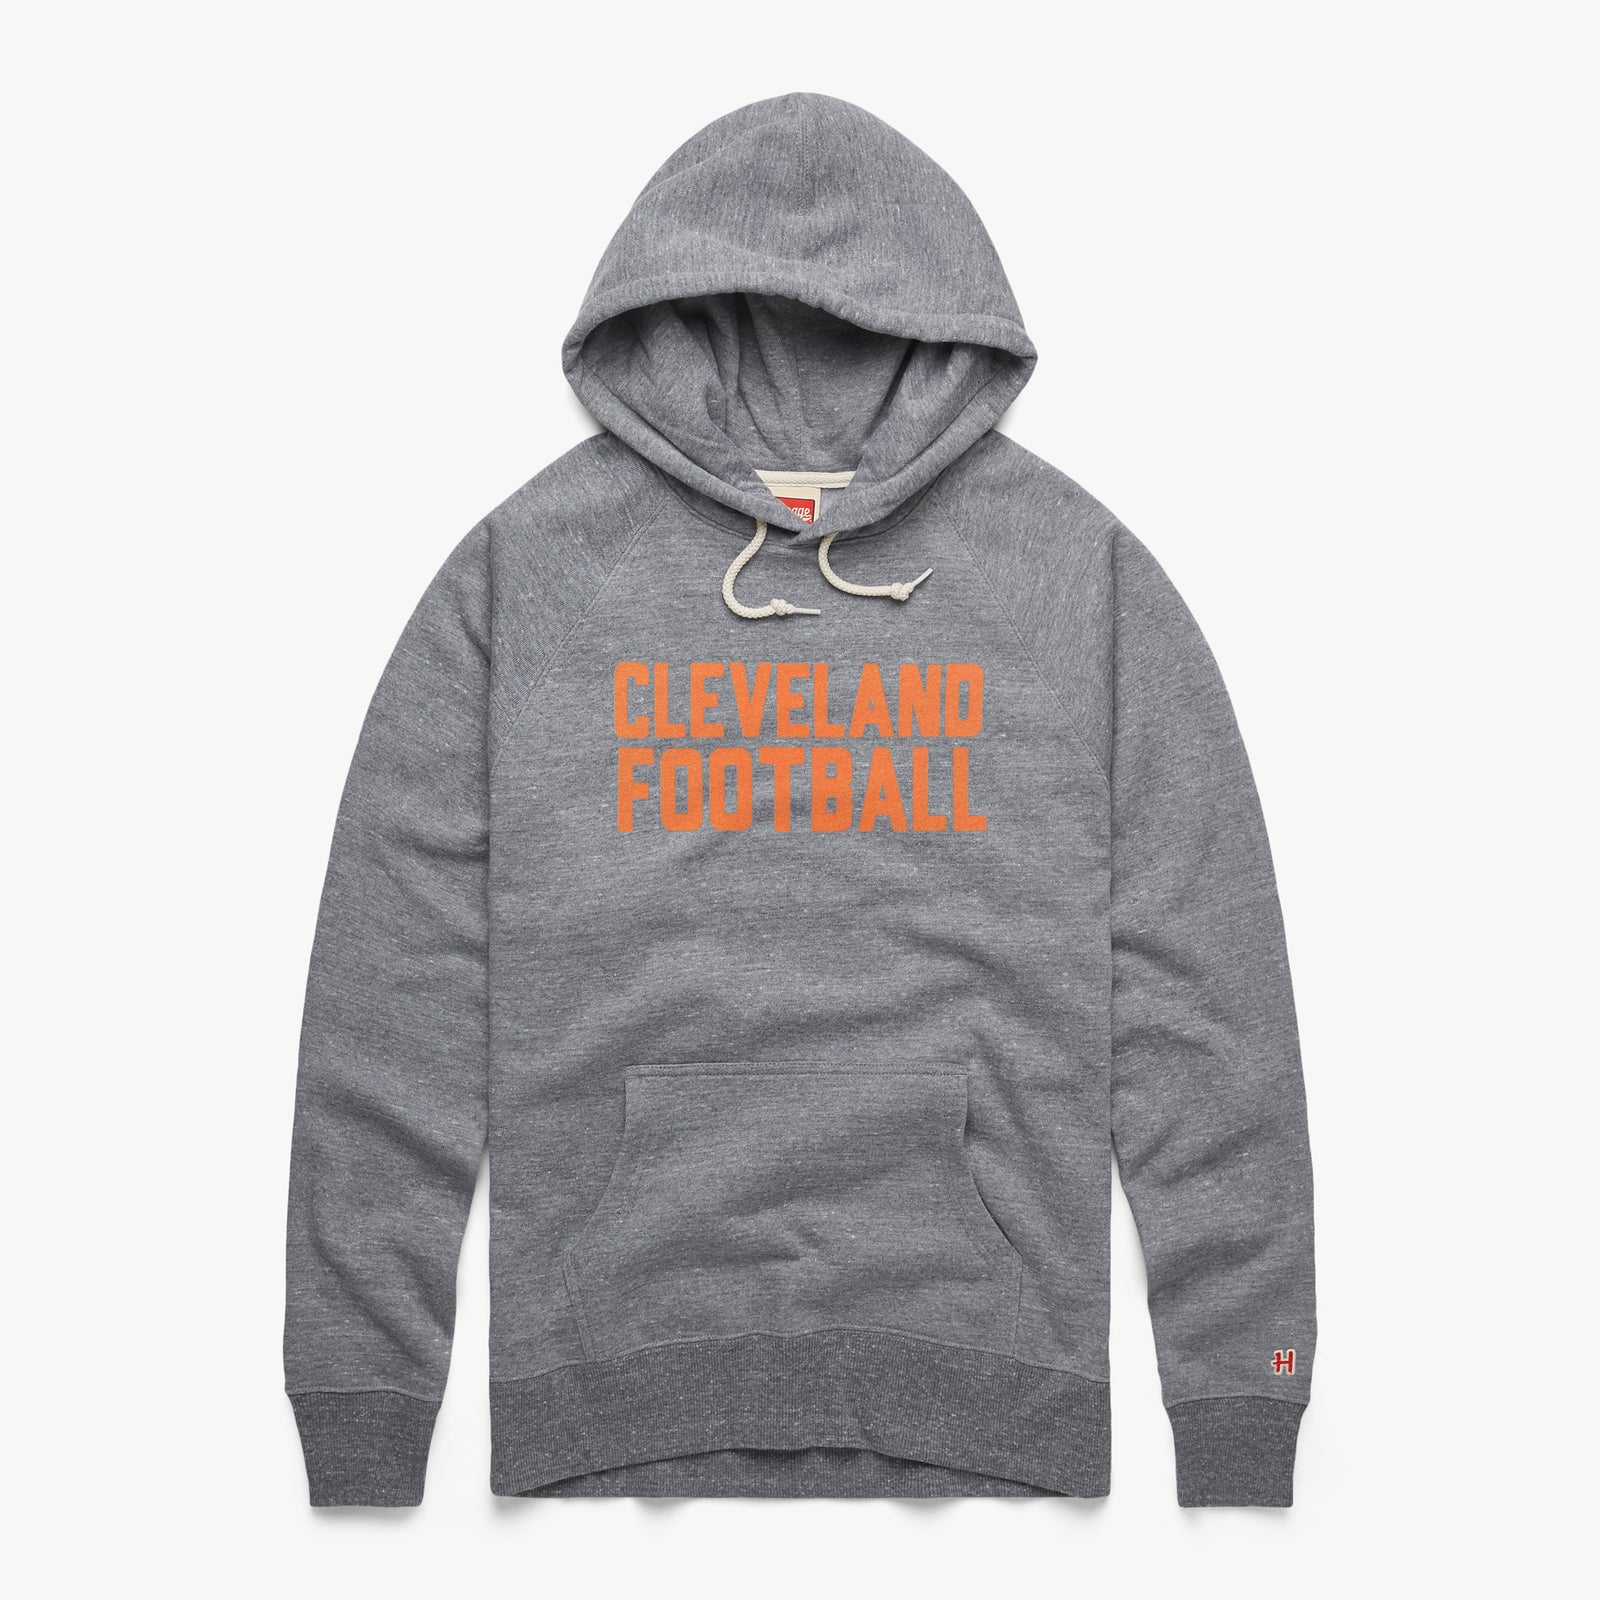 Cleveland Football Hoodie